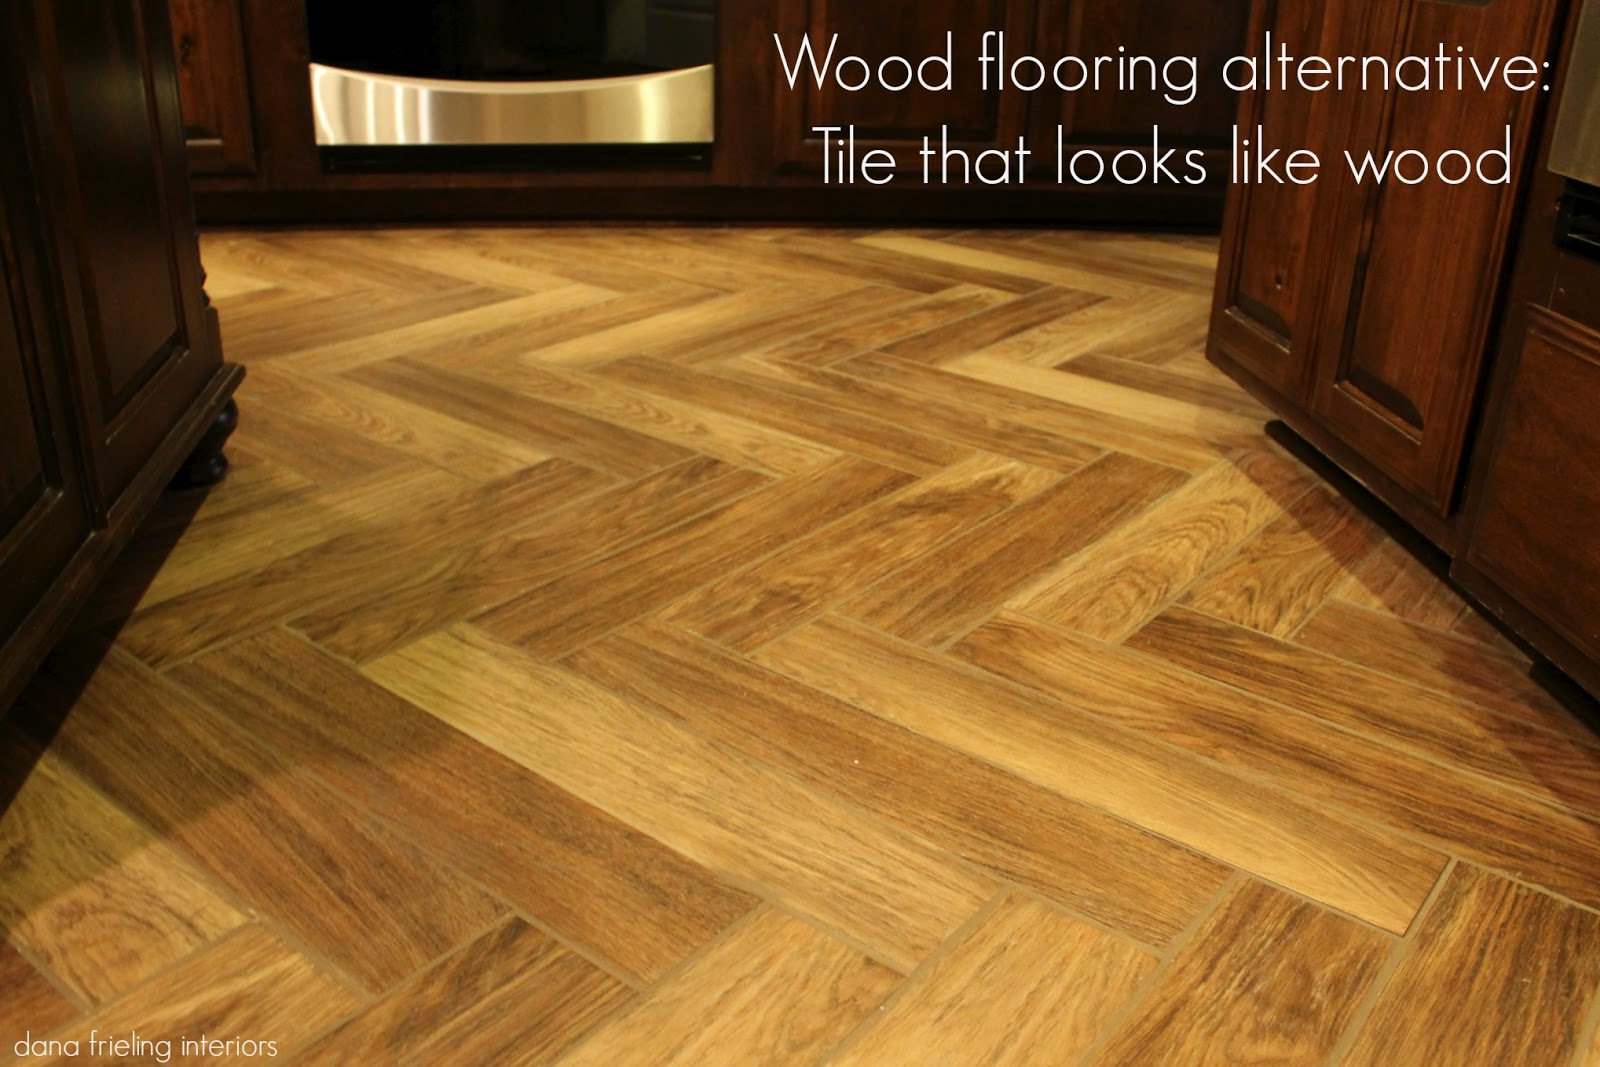 Make Them Wonder: Another Wood floor alternative